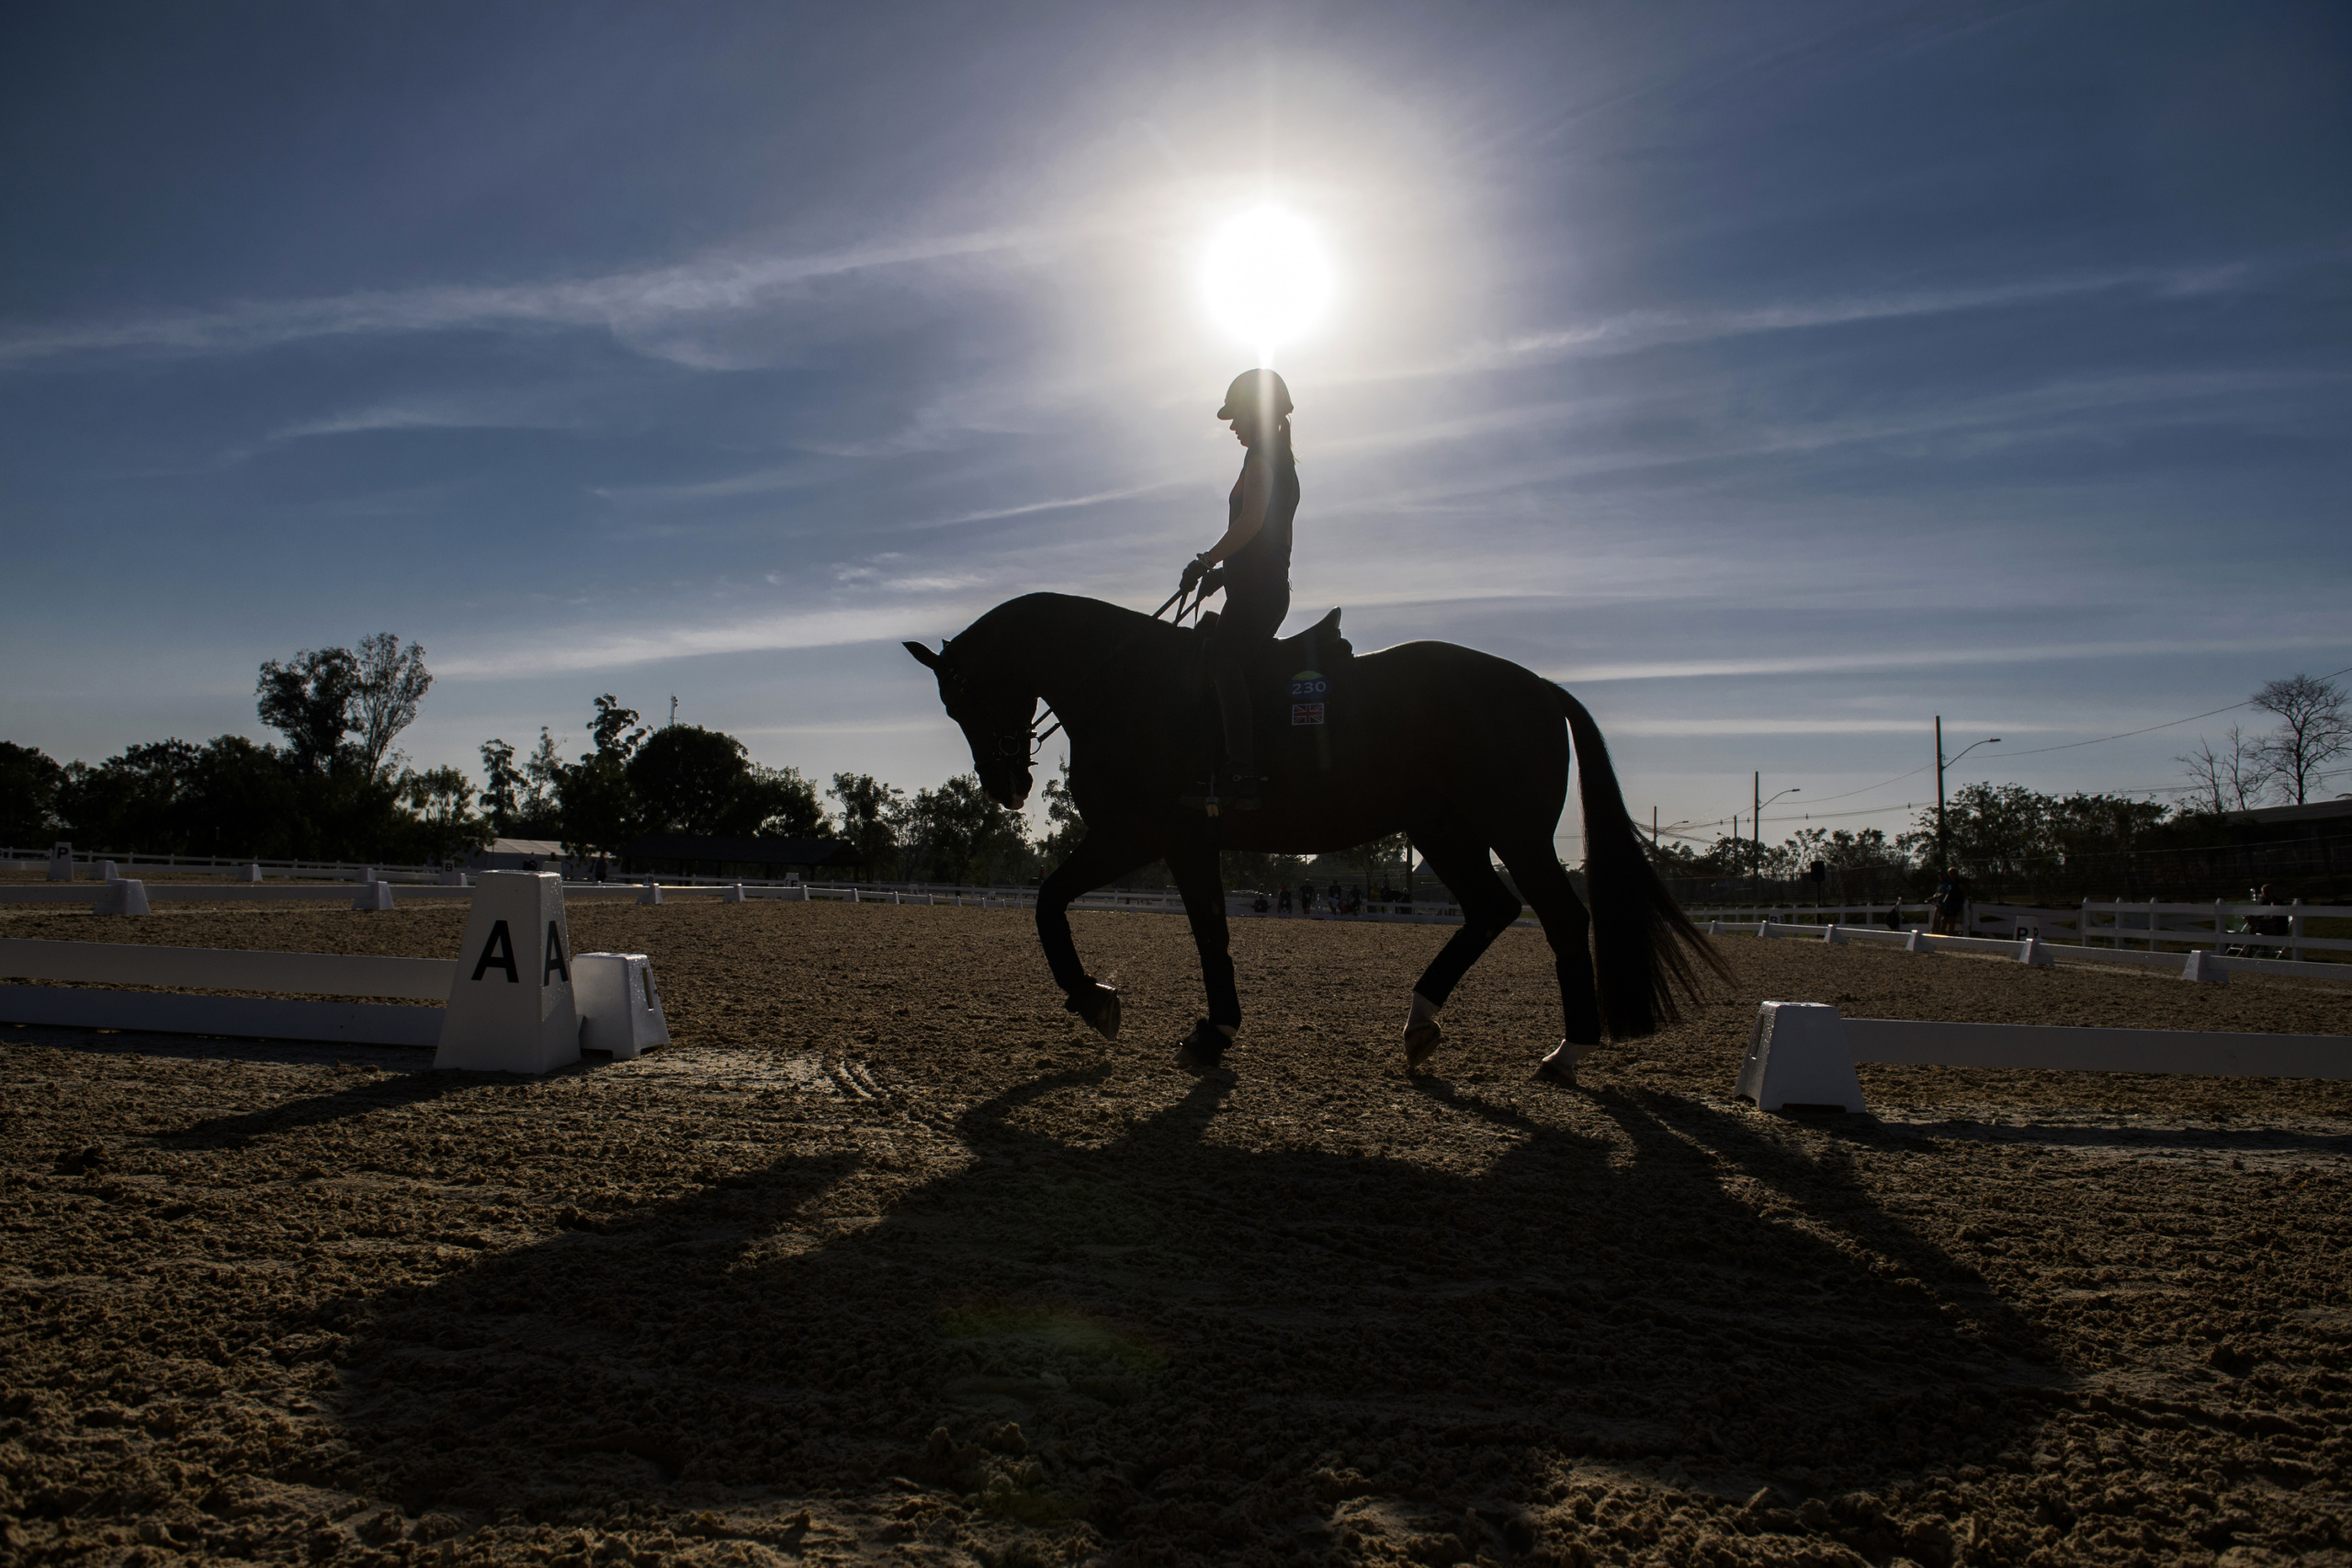 EQUESTRIAN Campaign realized for the International Federation for Equestrian Sports FEI. Dressage Training  Olympic Games Rio 2016 GBR Charlotte Dujardin